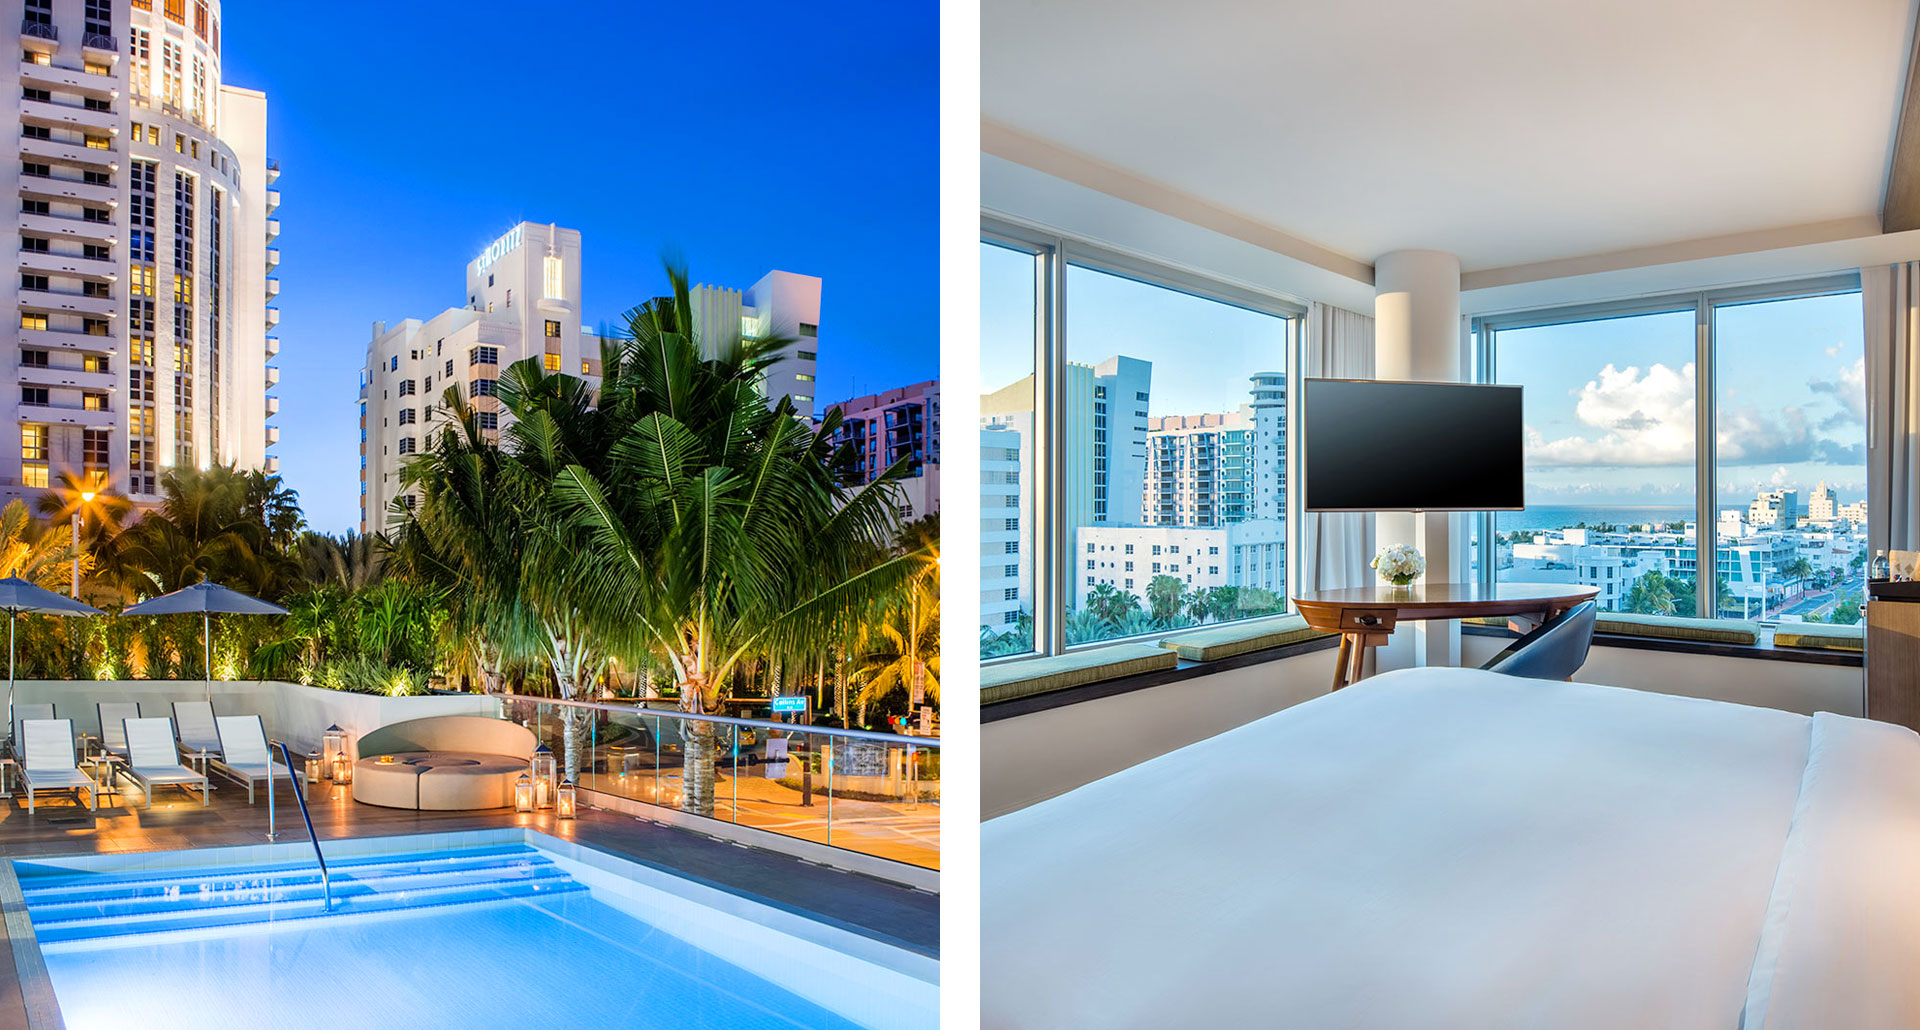 Hyatt Centric South Beach Miami - boutique hotel in Miami